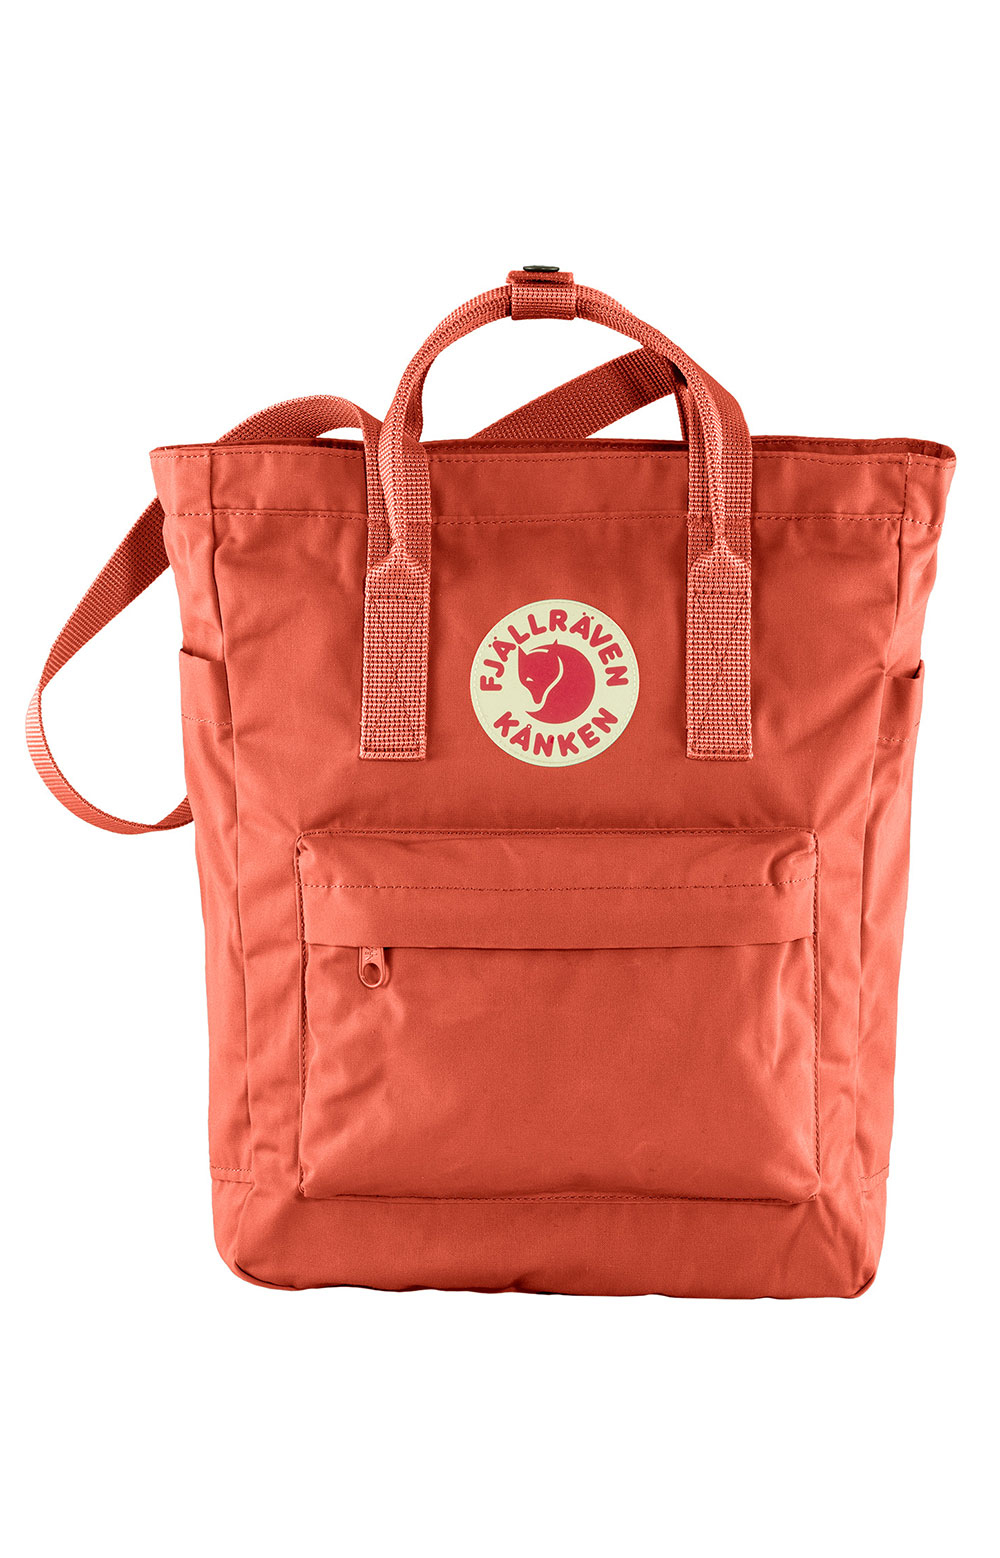 Kanken Tote Bag - Rowan Red